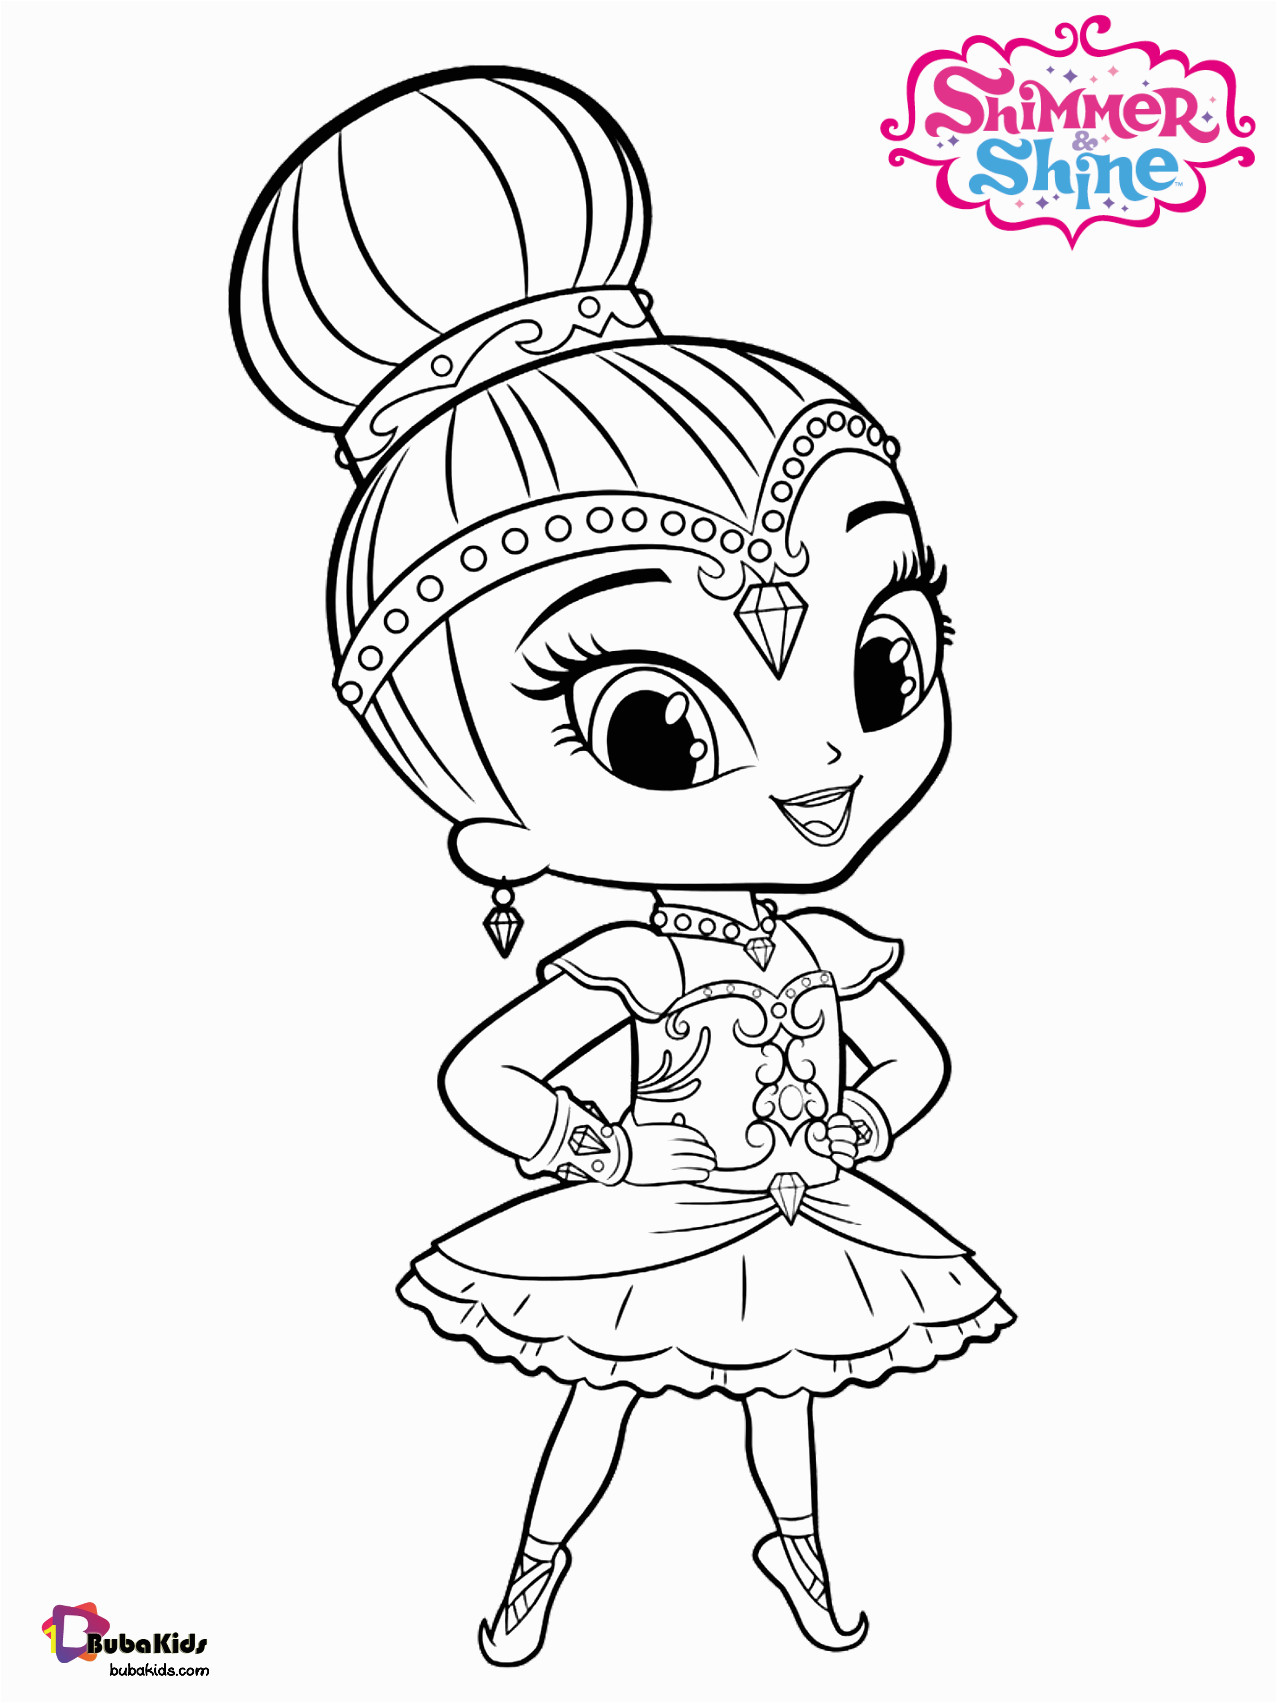 Nick Jr Shimmer and Shine Coloring Pages Free to Print Nick Jr Shimmer and Shine Coloring